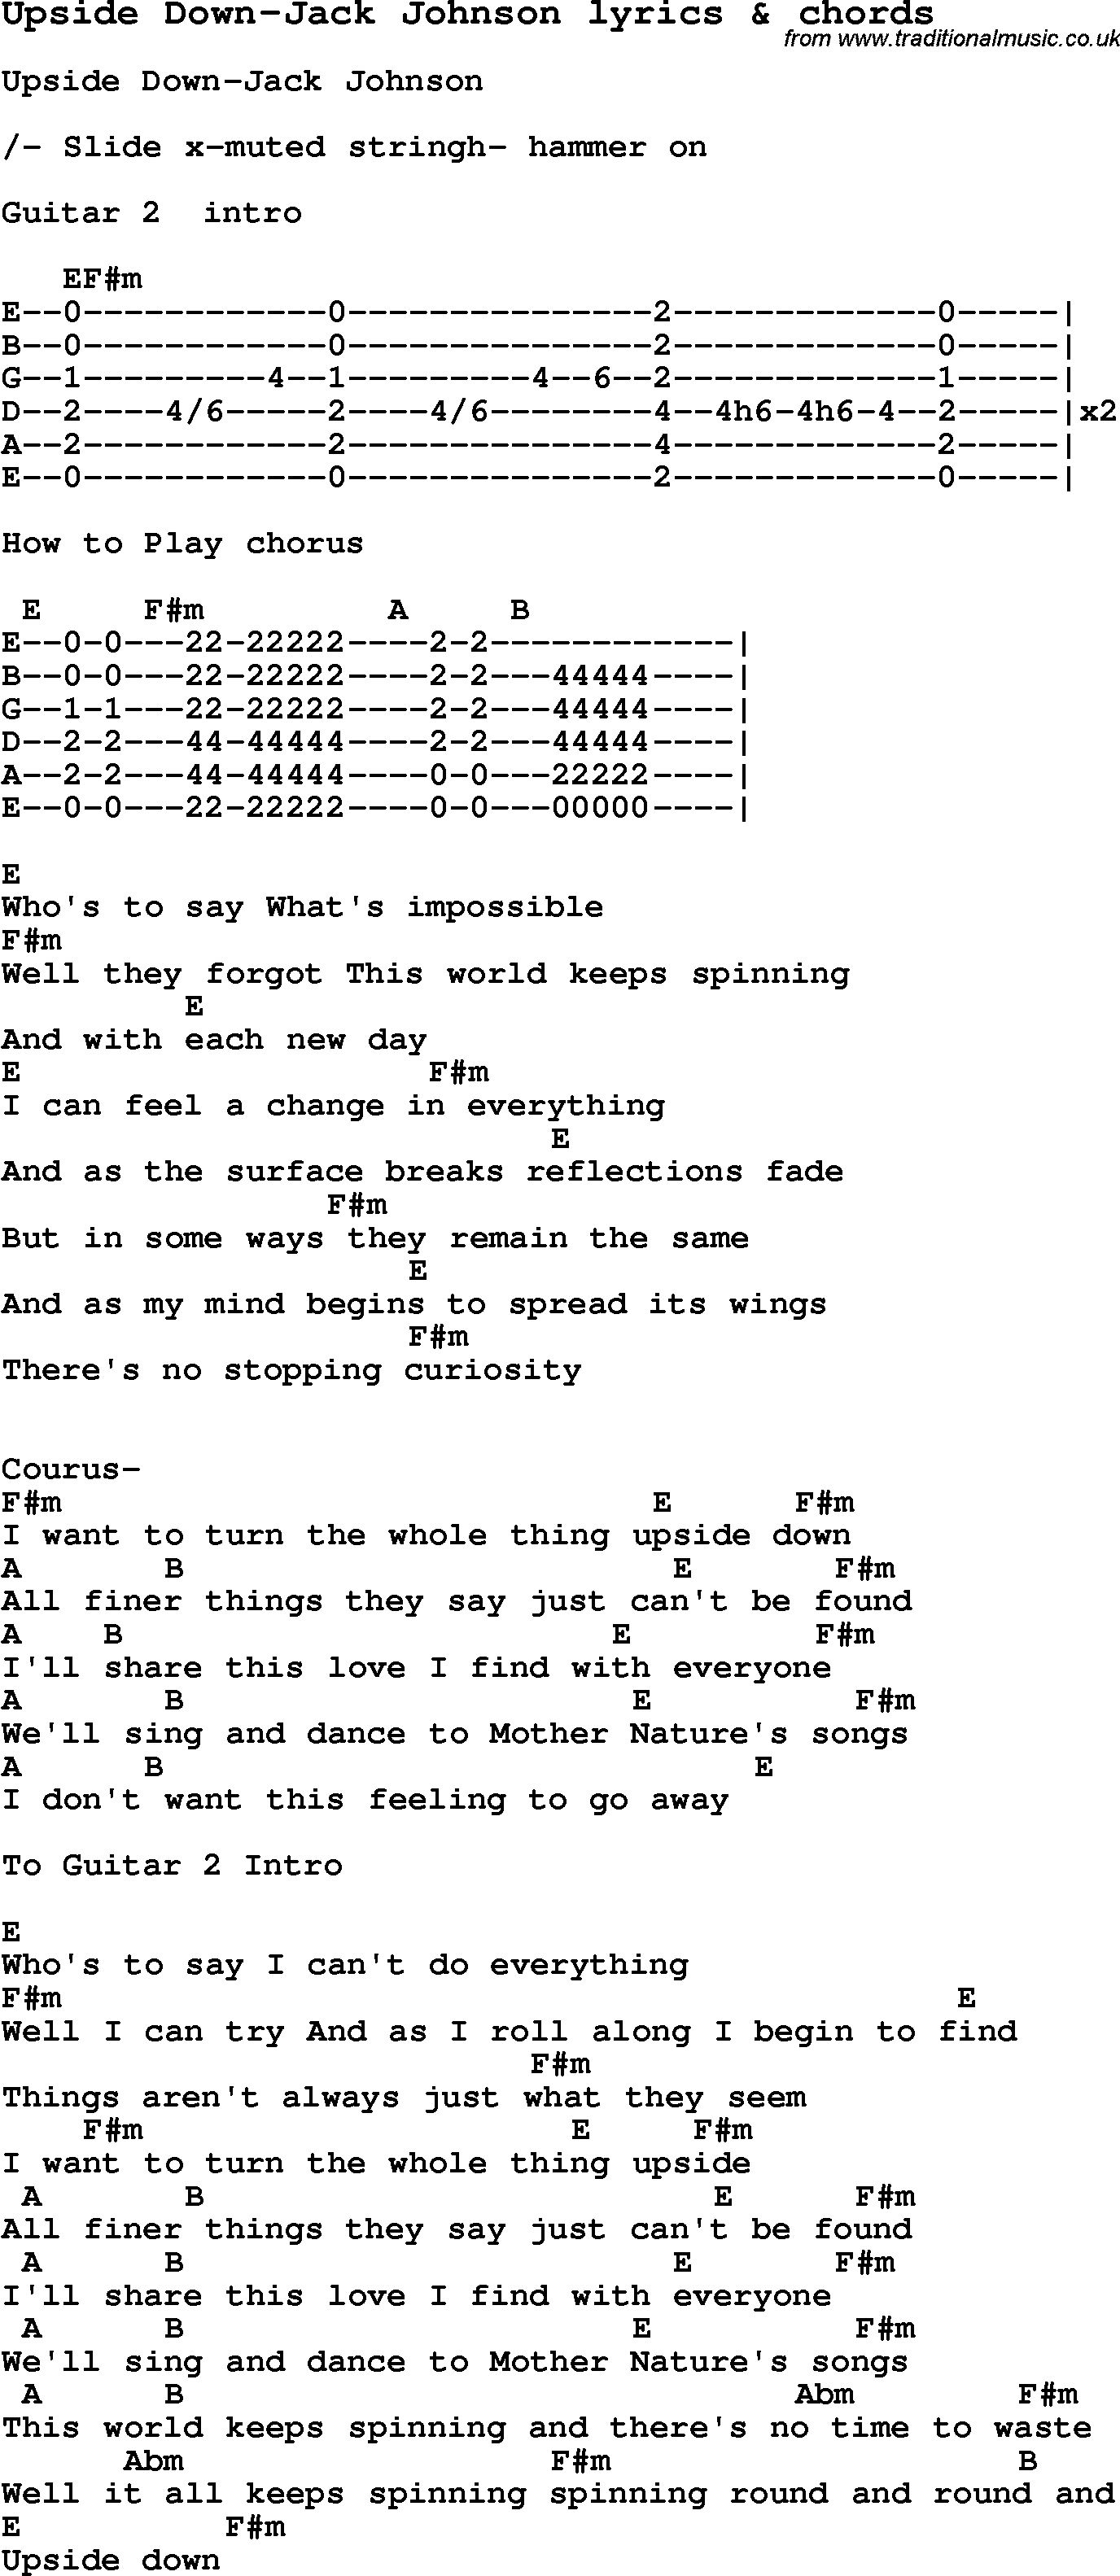 Love Song Lyrics For Upside Down Jack Johnson With Chords For